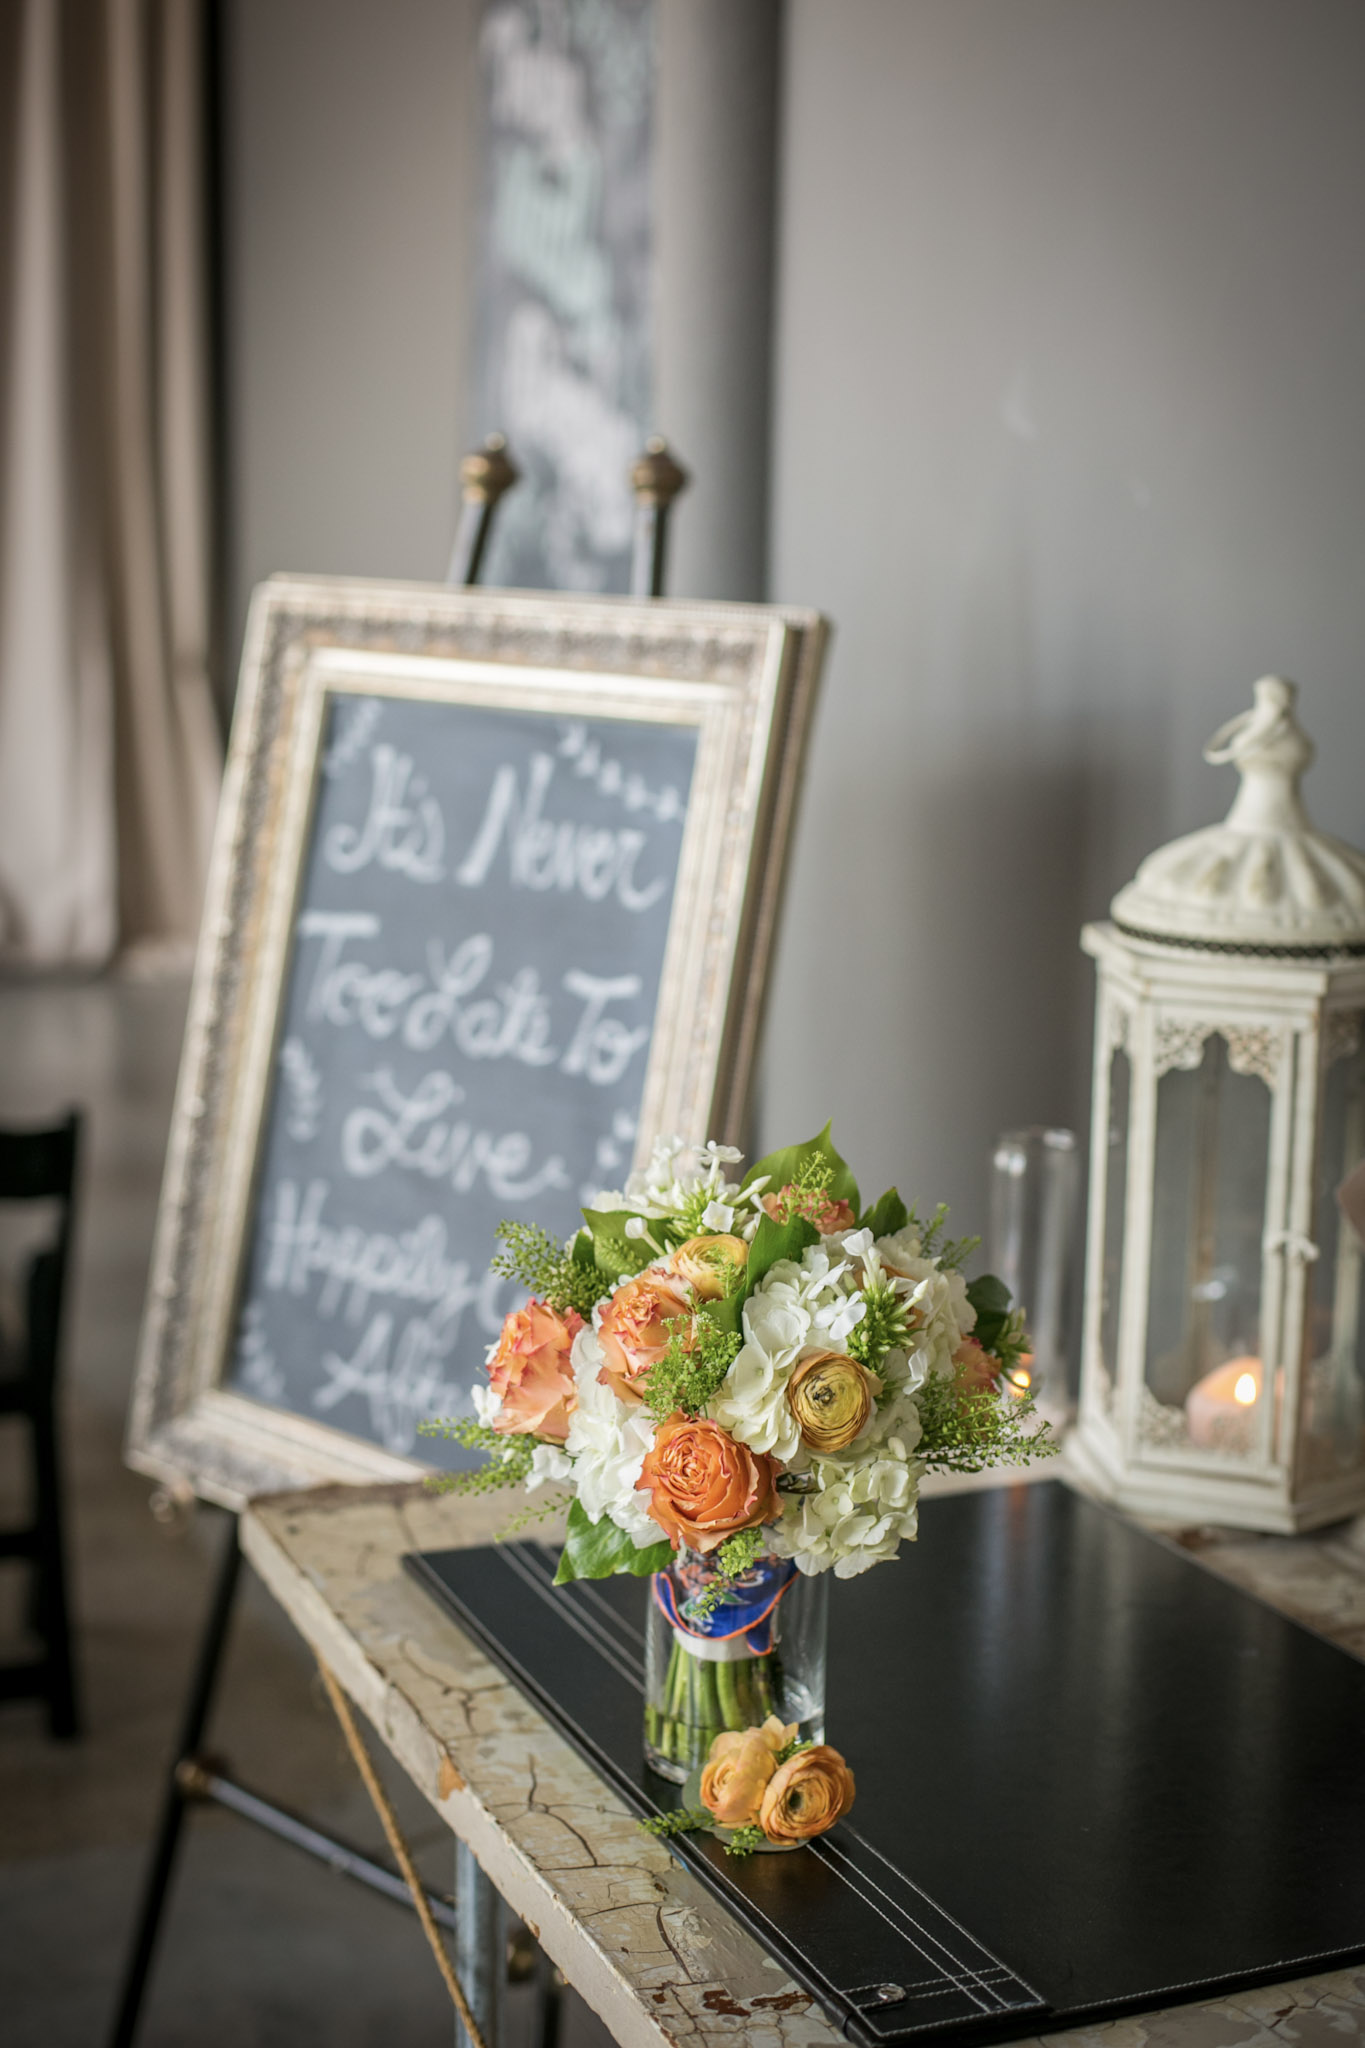 Kansas_City_Small_Wedding_Venue_Elope_Intimate_Ceremony_Budget_Affordable_Summer_Flowers_Carrie&Steve_009.jpg